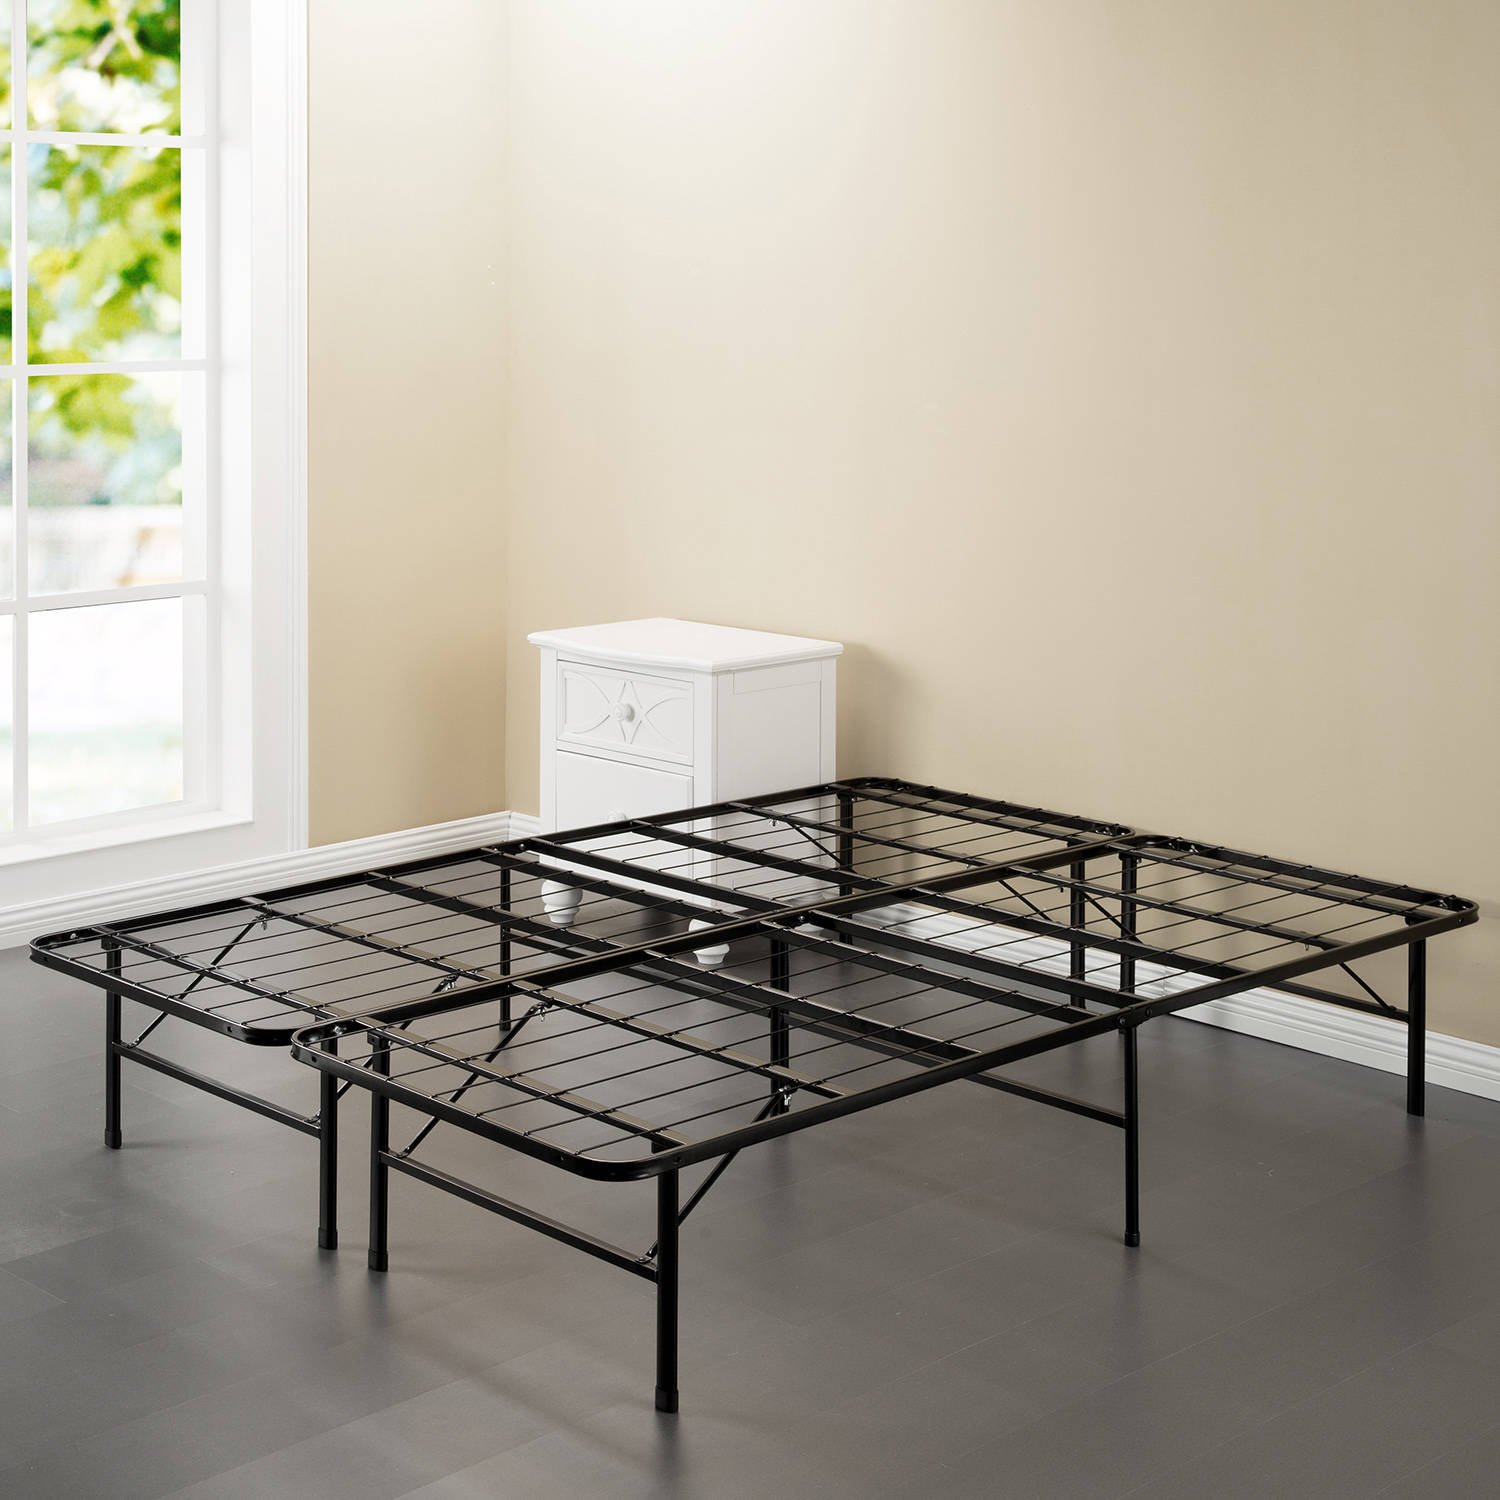 Smart Base 14 Inch Foundation Bed Frame Black, Sturdy and Durable Industrial Grade Steel Construction, No Box Spring Needed, Put Together in Minutes, Large Under Bed Storage, Multiple Size Options